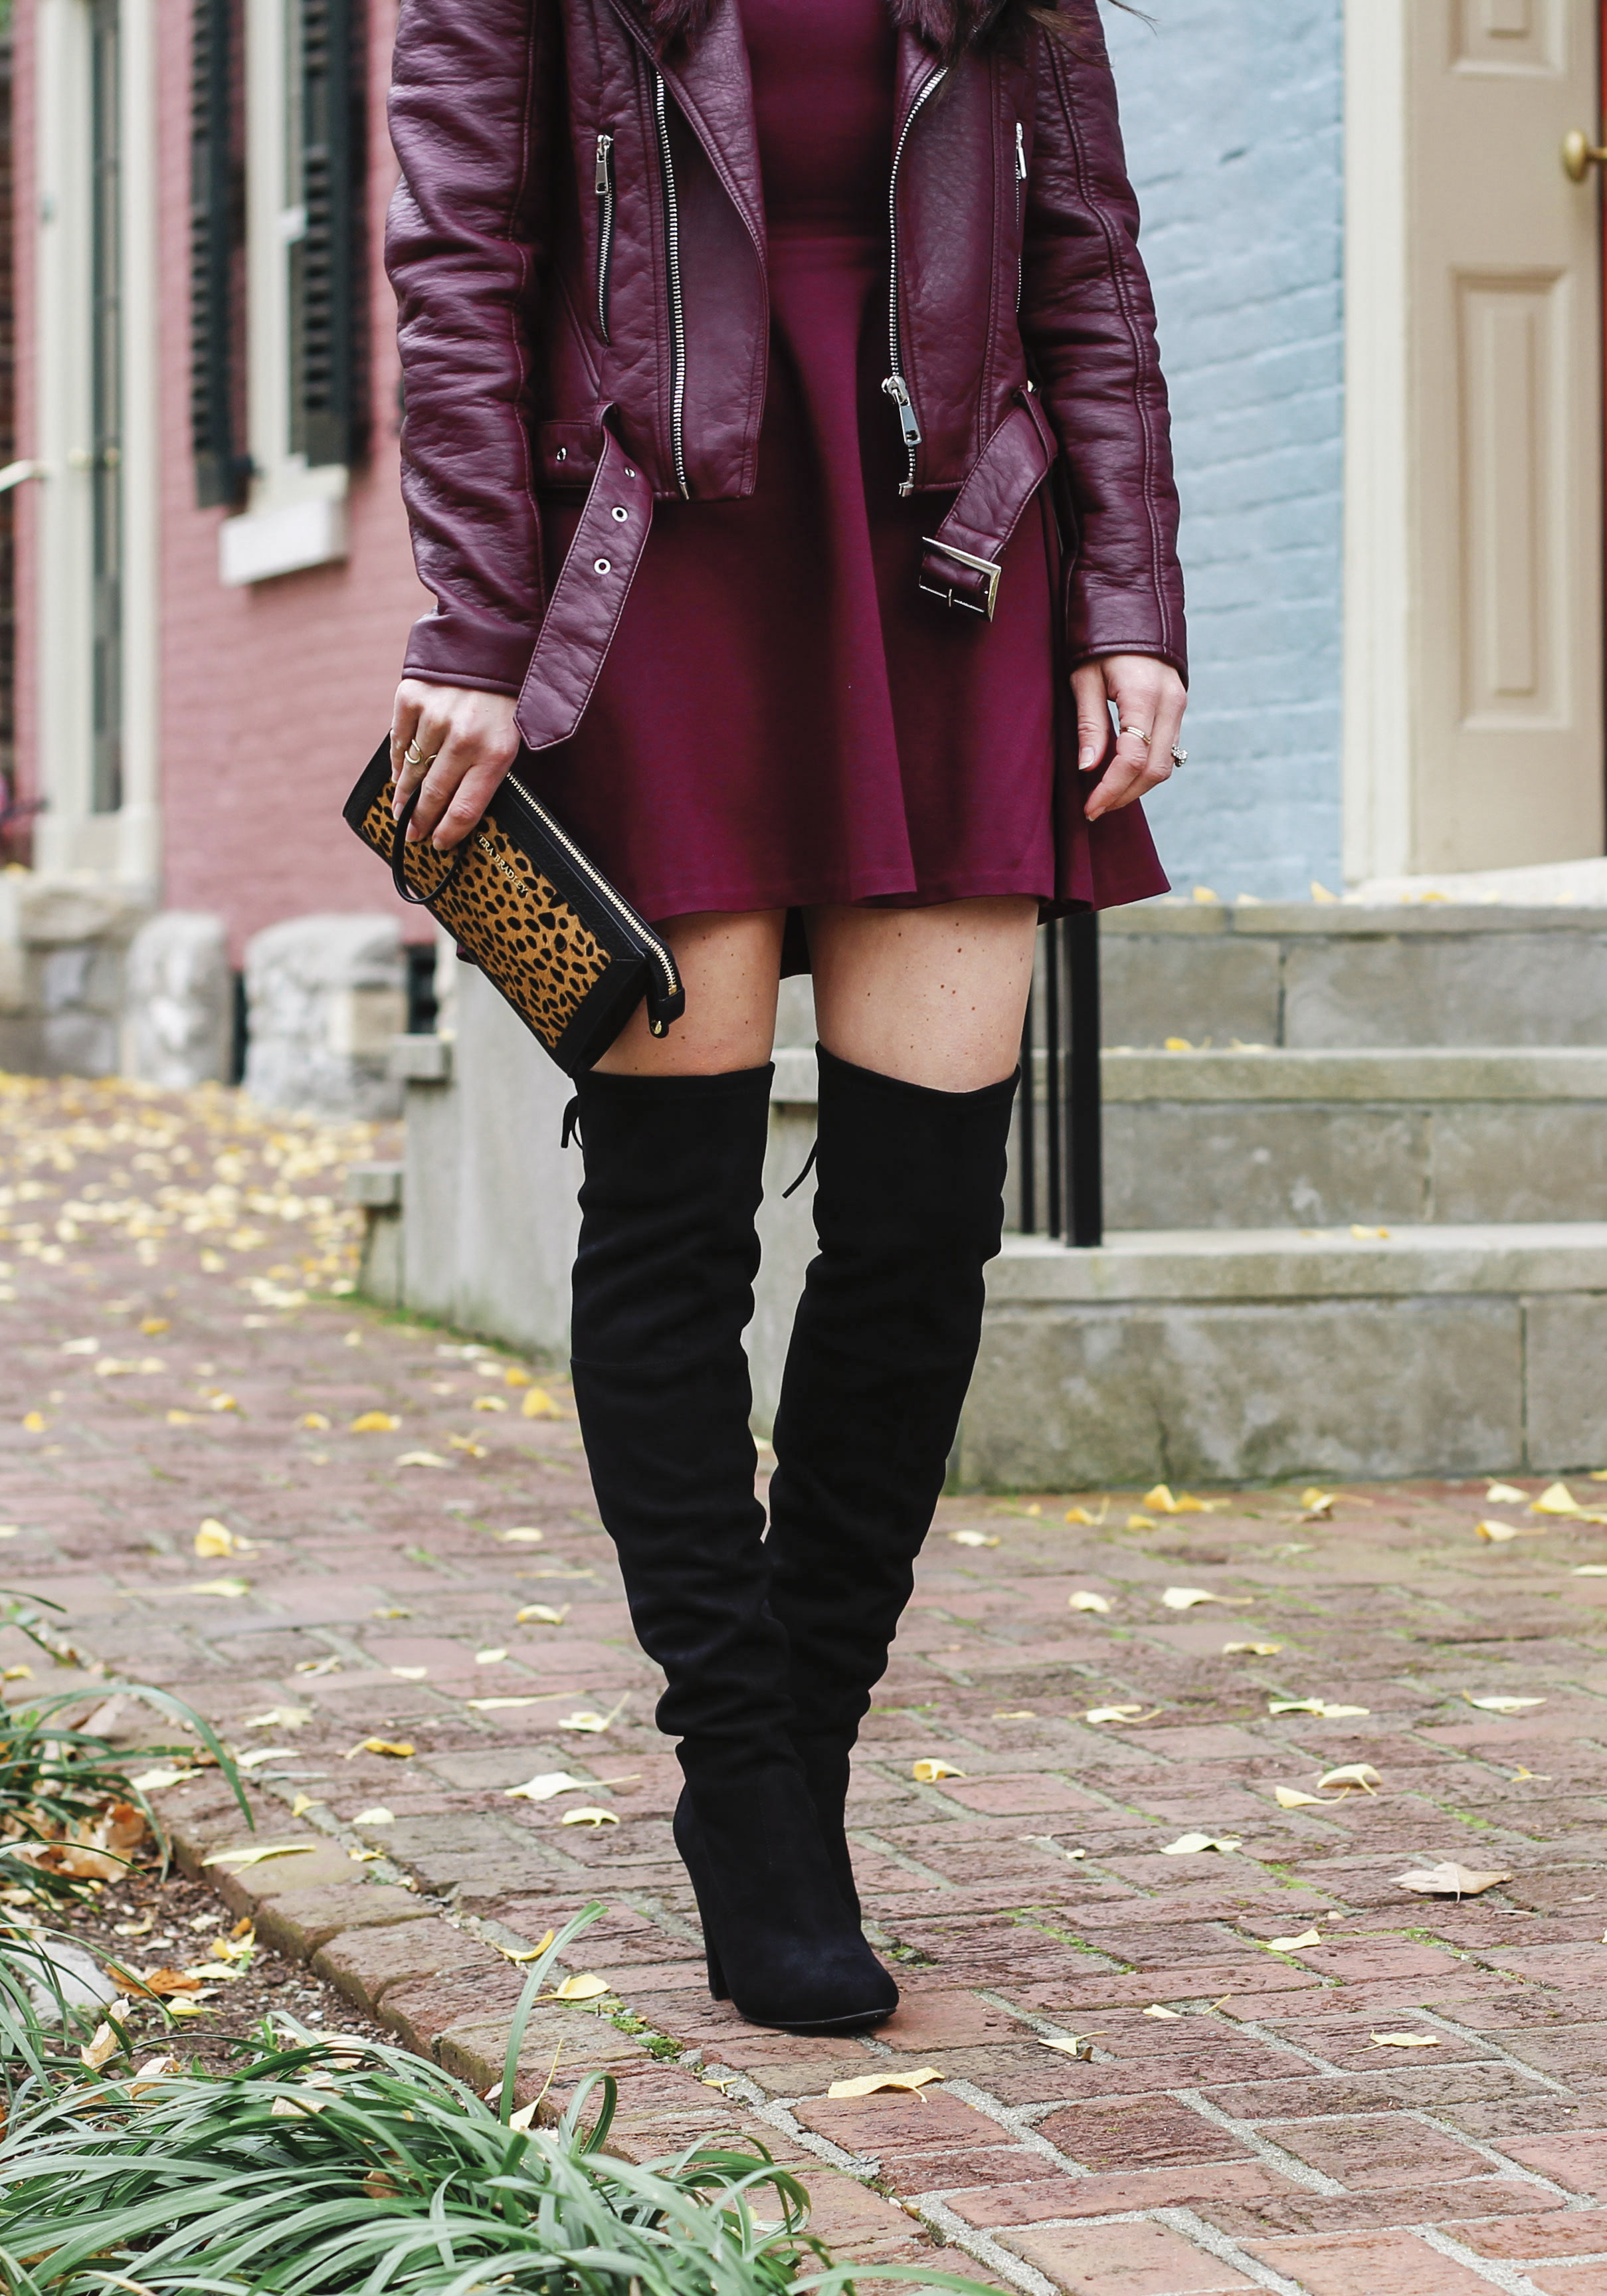 Cute fall outfits with over the knee boots, otk boot outfit ideas, Burgundy moto jacket with burgundy fit and flare dress, Steve Madden Gorgeous over the knee boots.